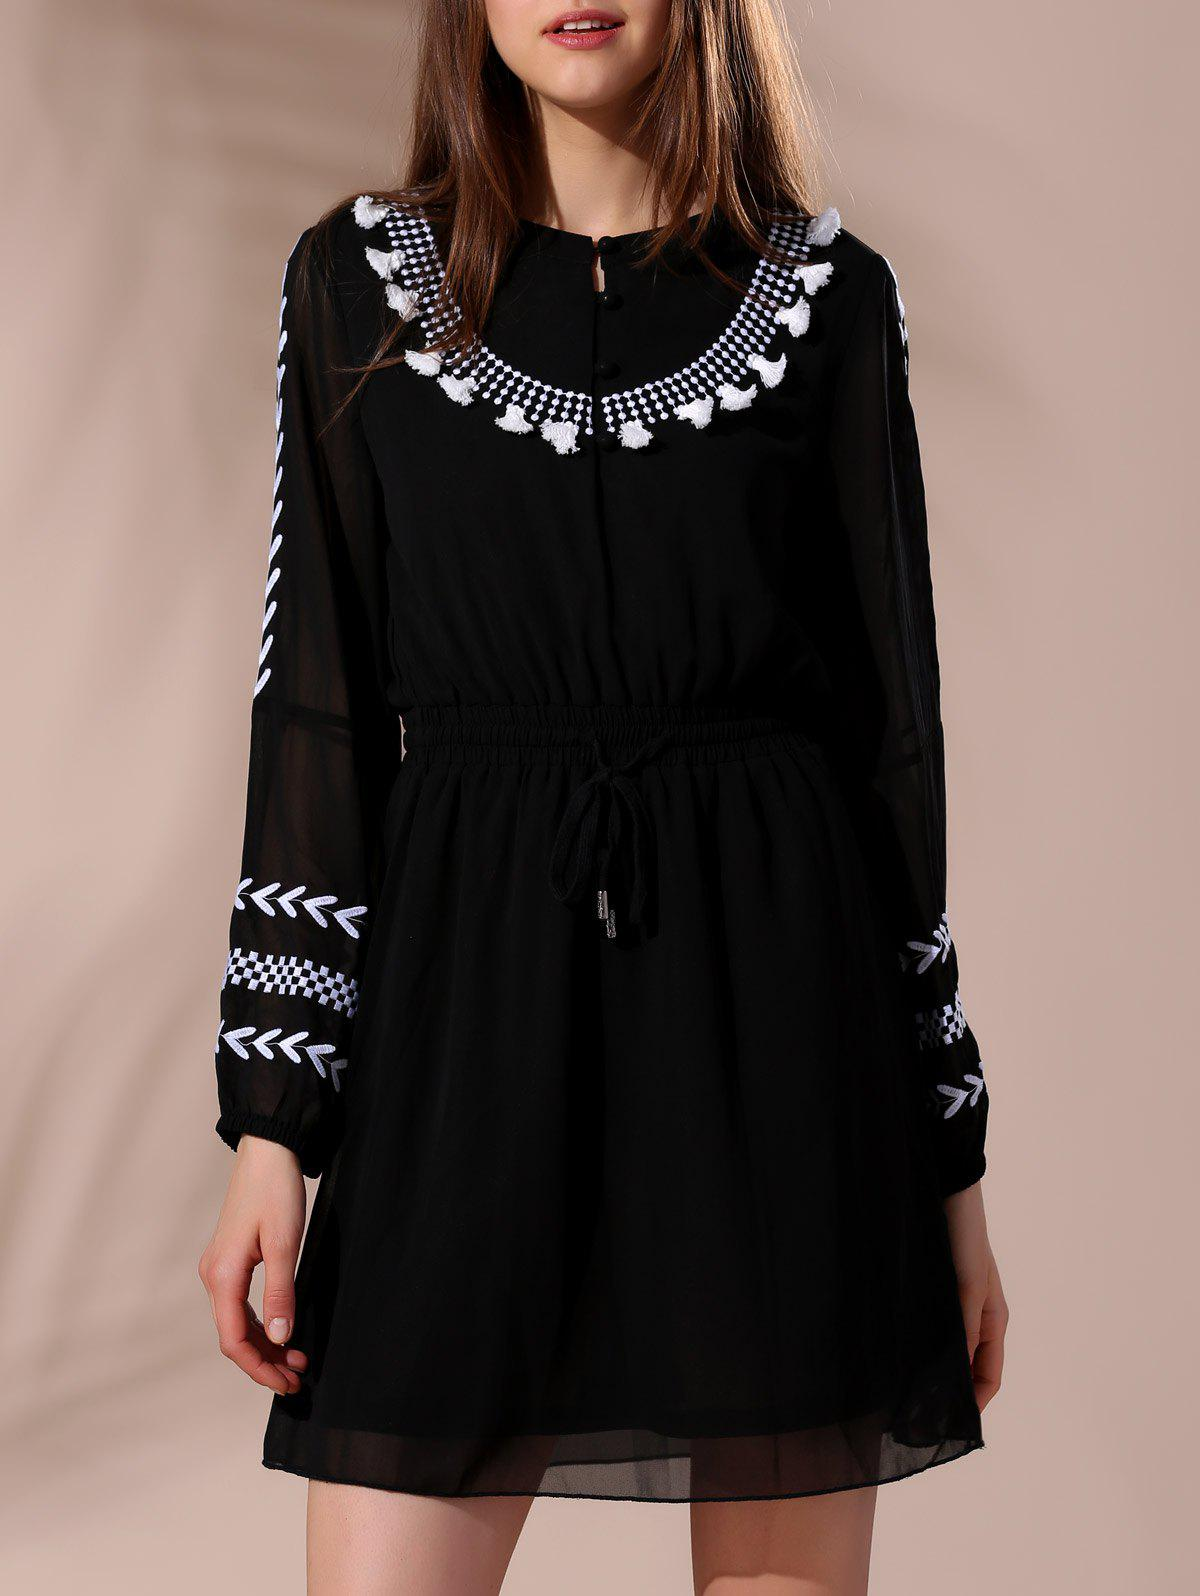 Ethnic Women's Round Neck Embroidered Long Sleeve Drawstring Dress - BLACK S